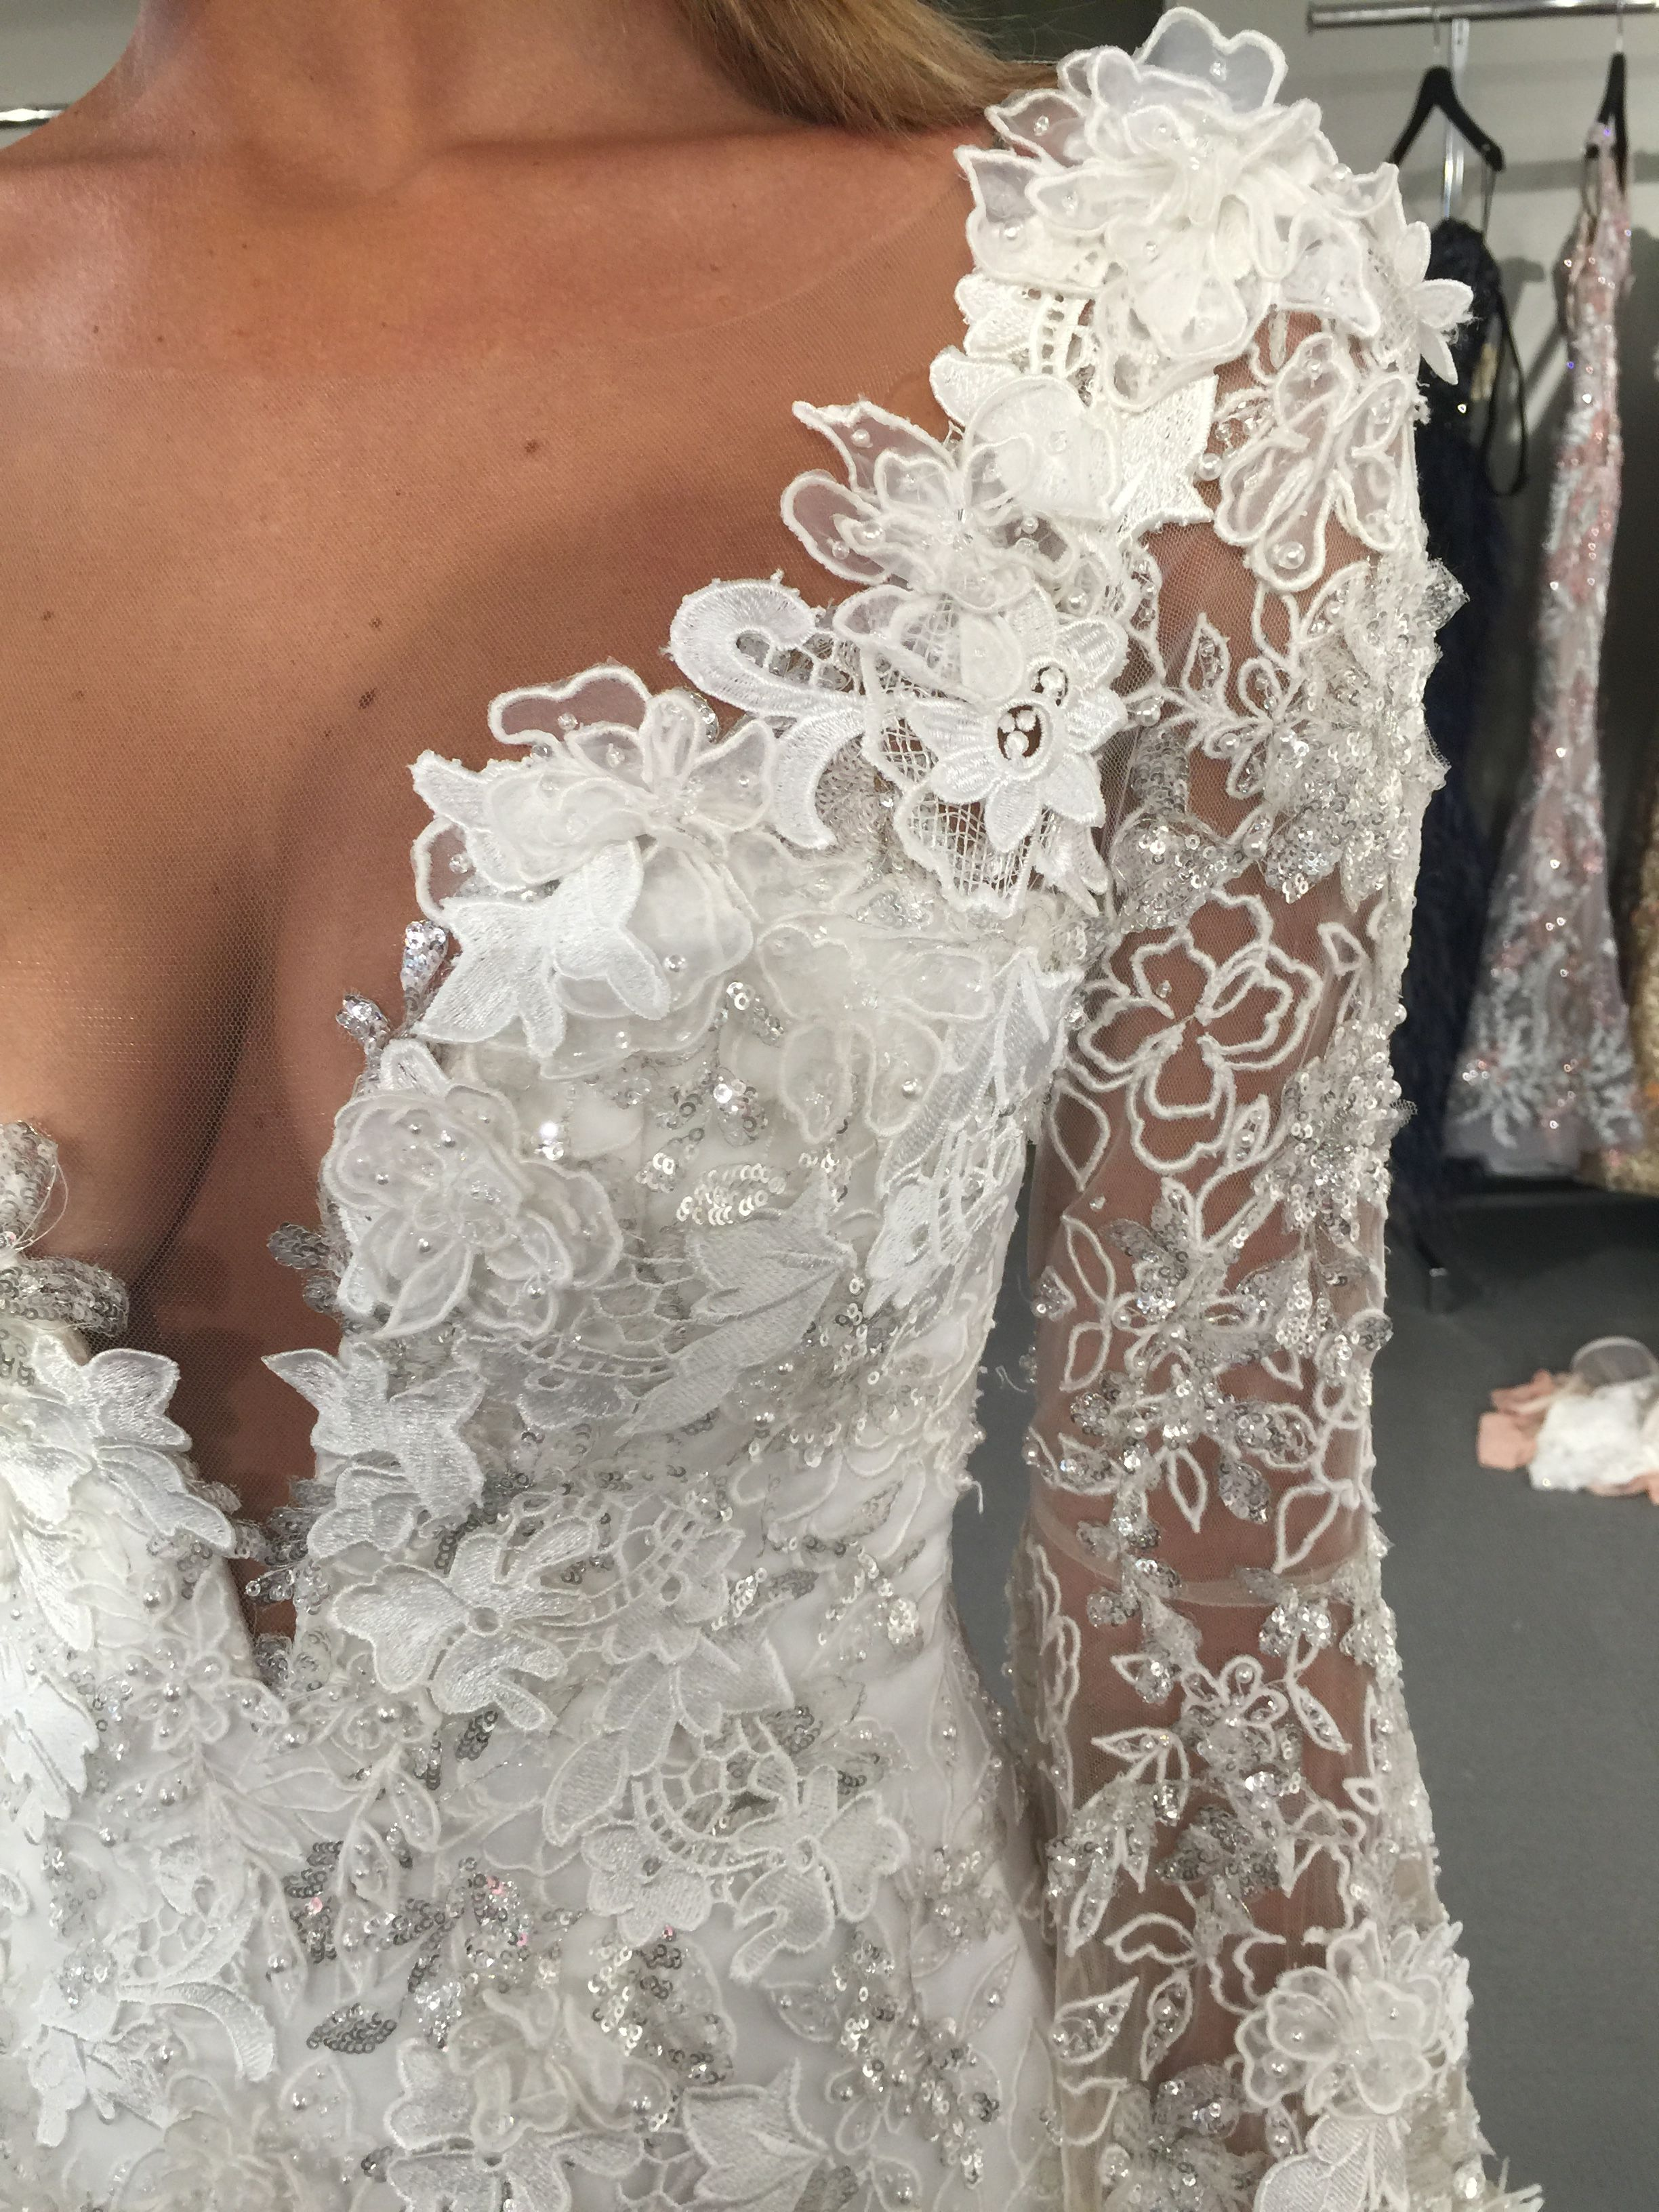 fdb4f23c412638 Ysa Makino FAll 2017 wedding dress available at Dimitra s Bridal Couture in  Chicago. www.DimitrasBridal.com  sparkle  glamorous  bride  engagementring  ...